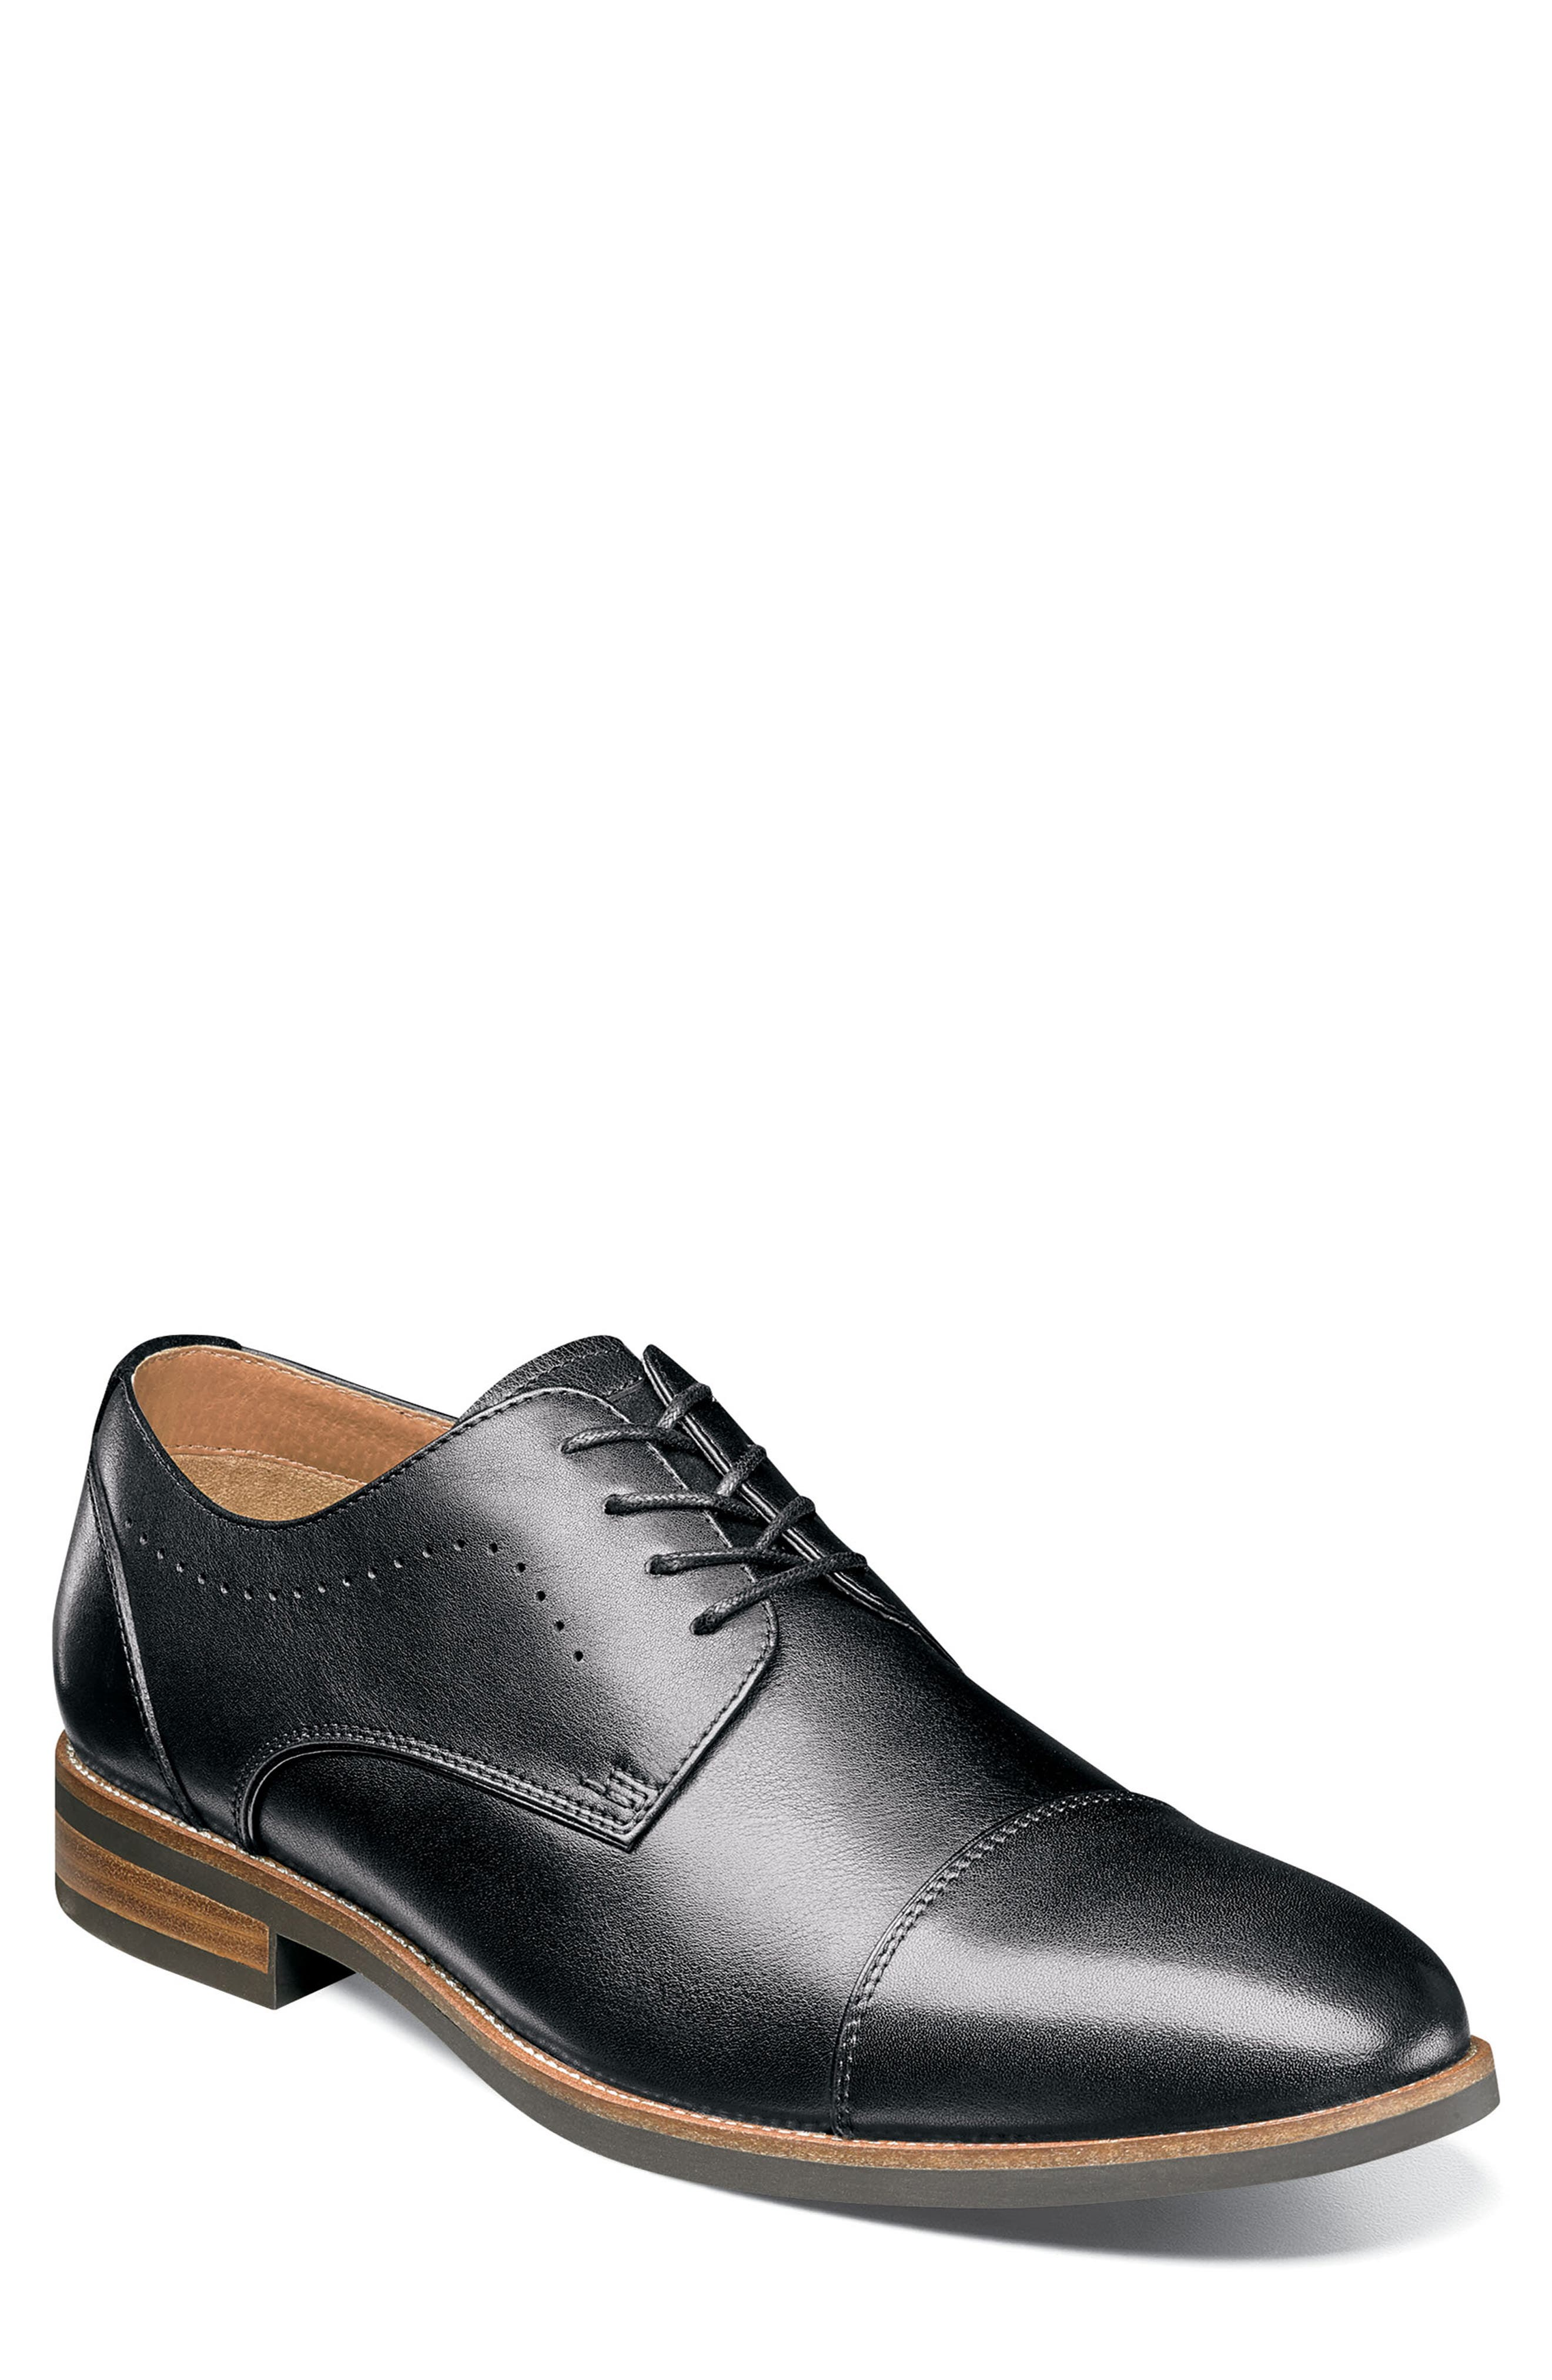 Uptown Cap Toe Derby,                             Main thumbnail 1, color,                             BLACK LEATHER